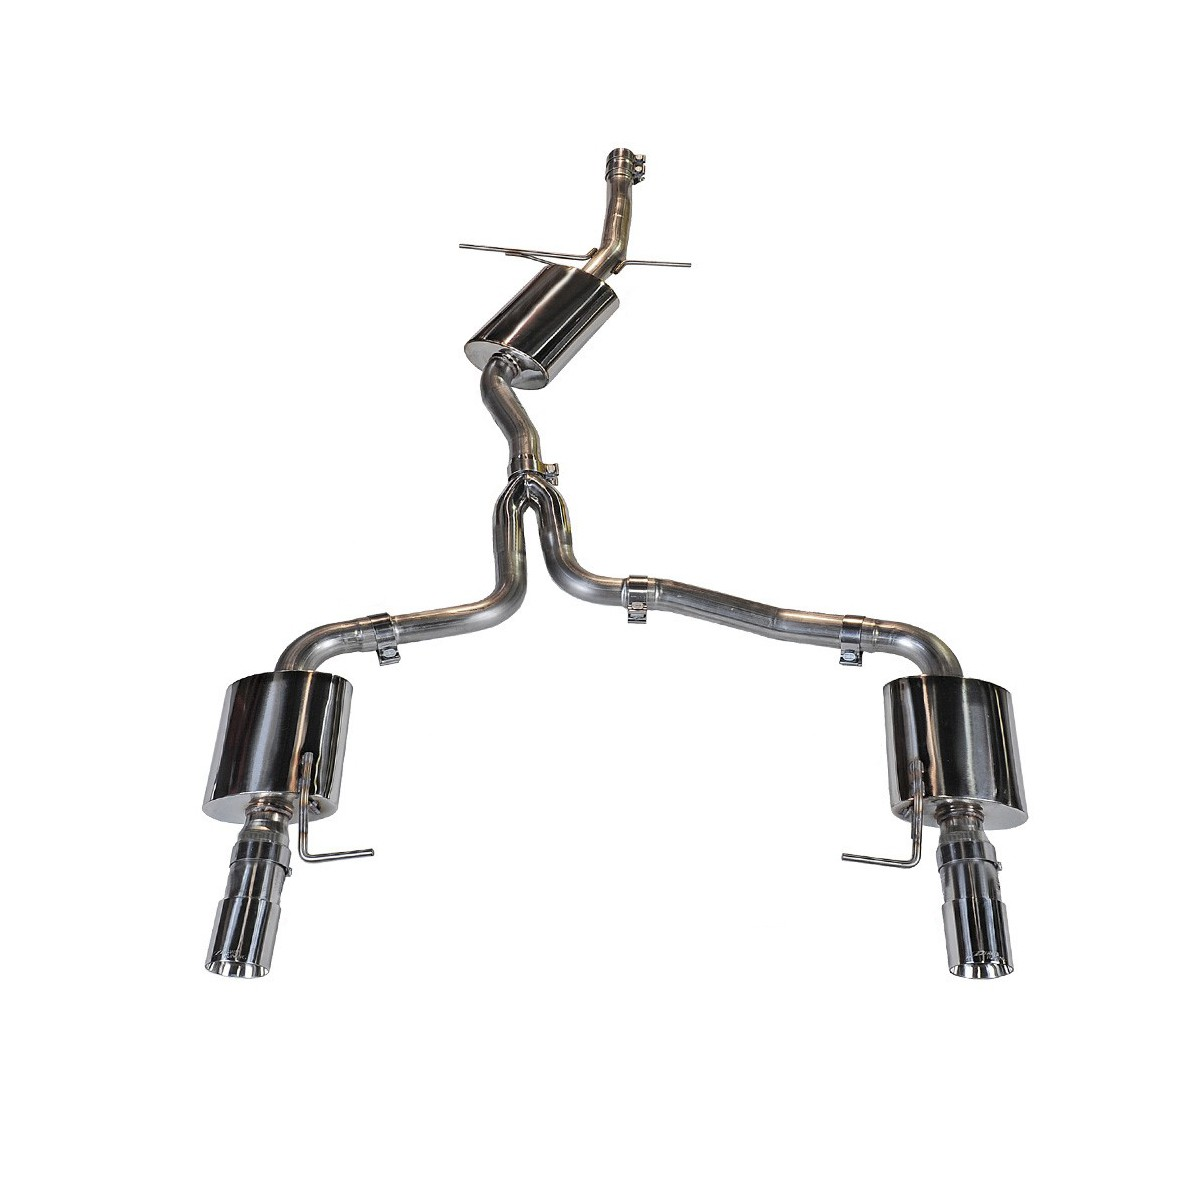 AWE Tuning B8.5 Audi A5 2.0T Touring Edition Dual Outlet Cat-Back Exhaust System